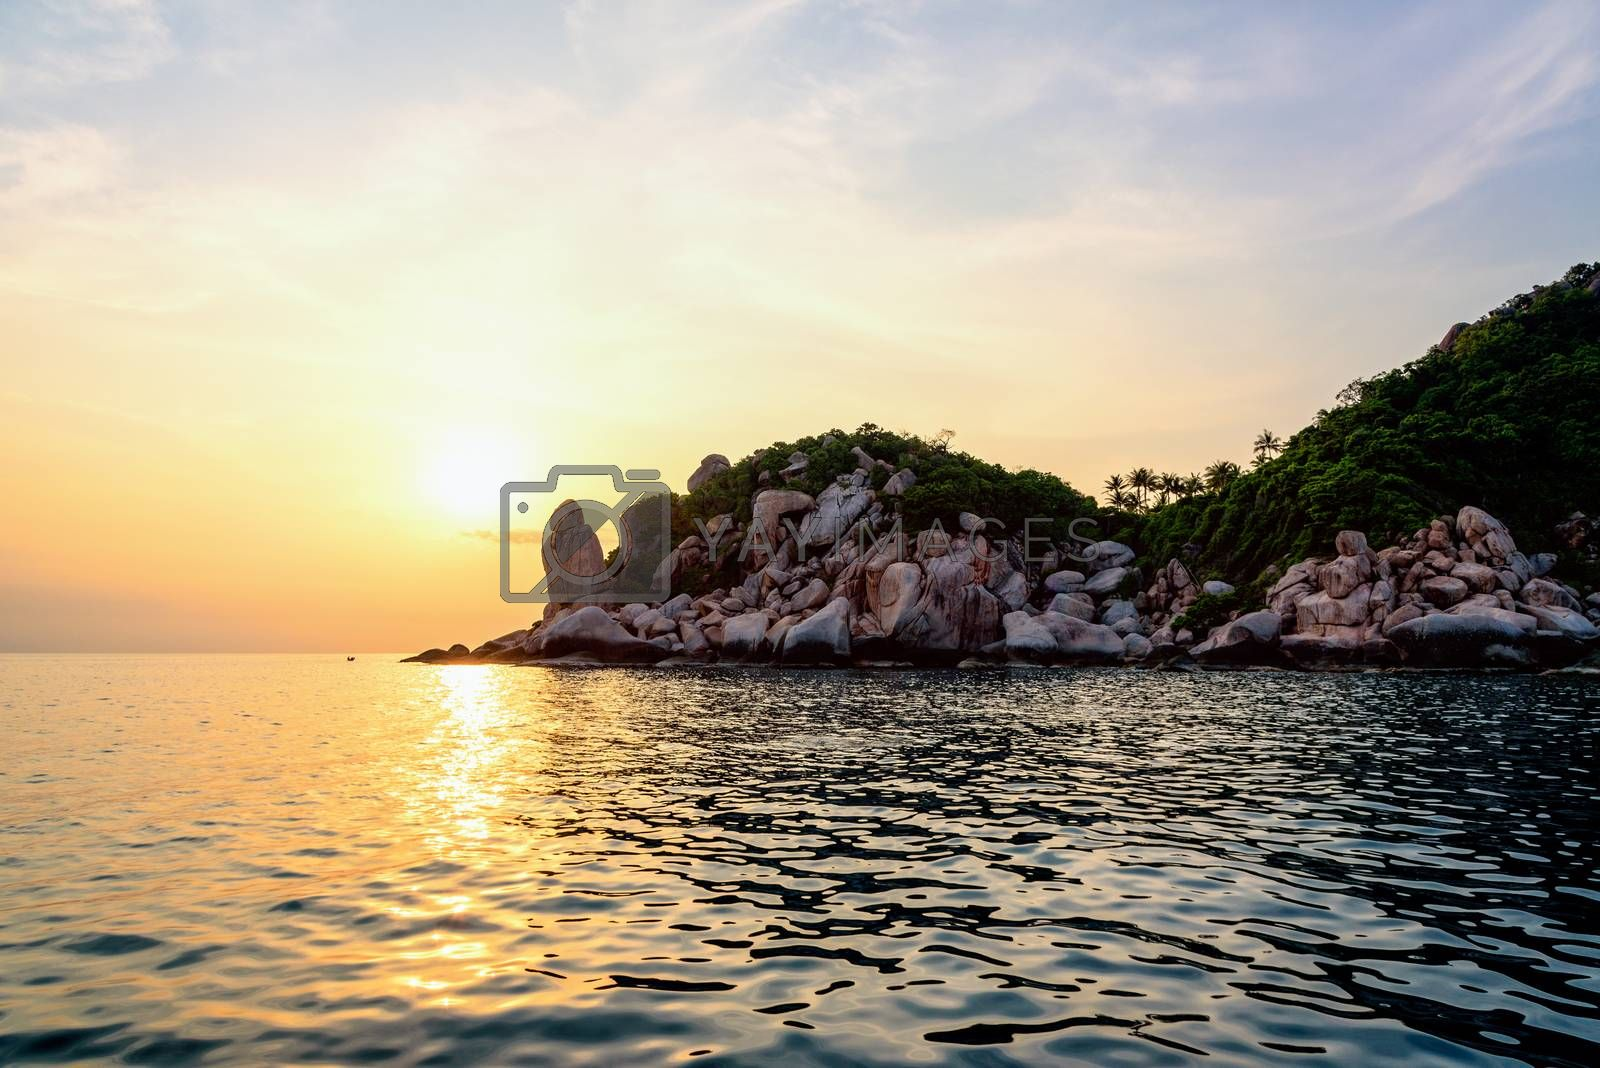 Beautiful nature landscape group strange stone of Buddha Point at cape near John-Suwan viewpoint under the colorful sky and sun during sunset on the sea in Ko Tao island, Surat Thani, Thailand